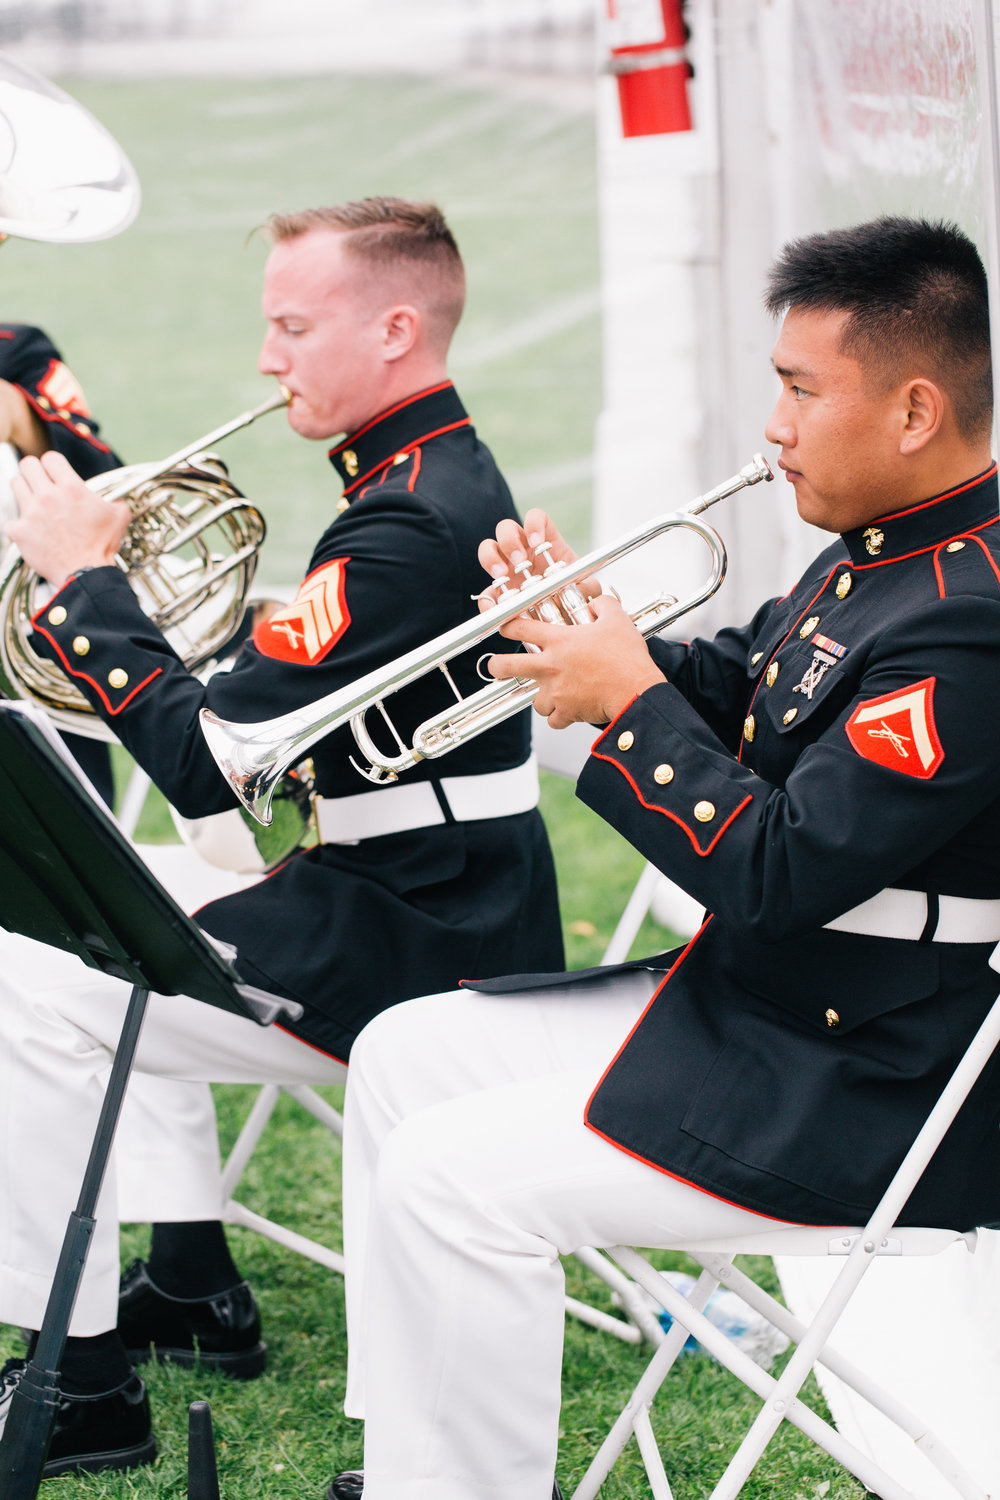 The United States Marine Corps Band of New Orleans performs.